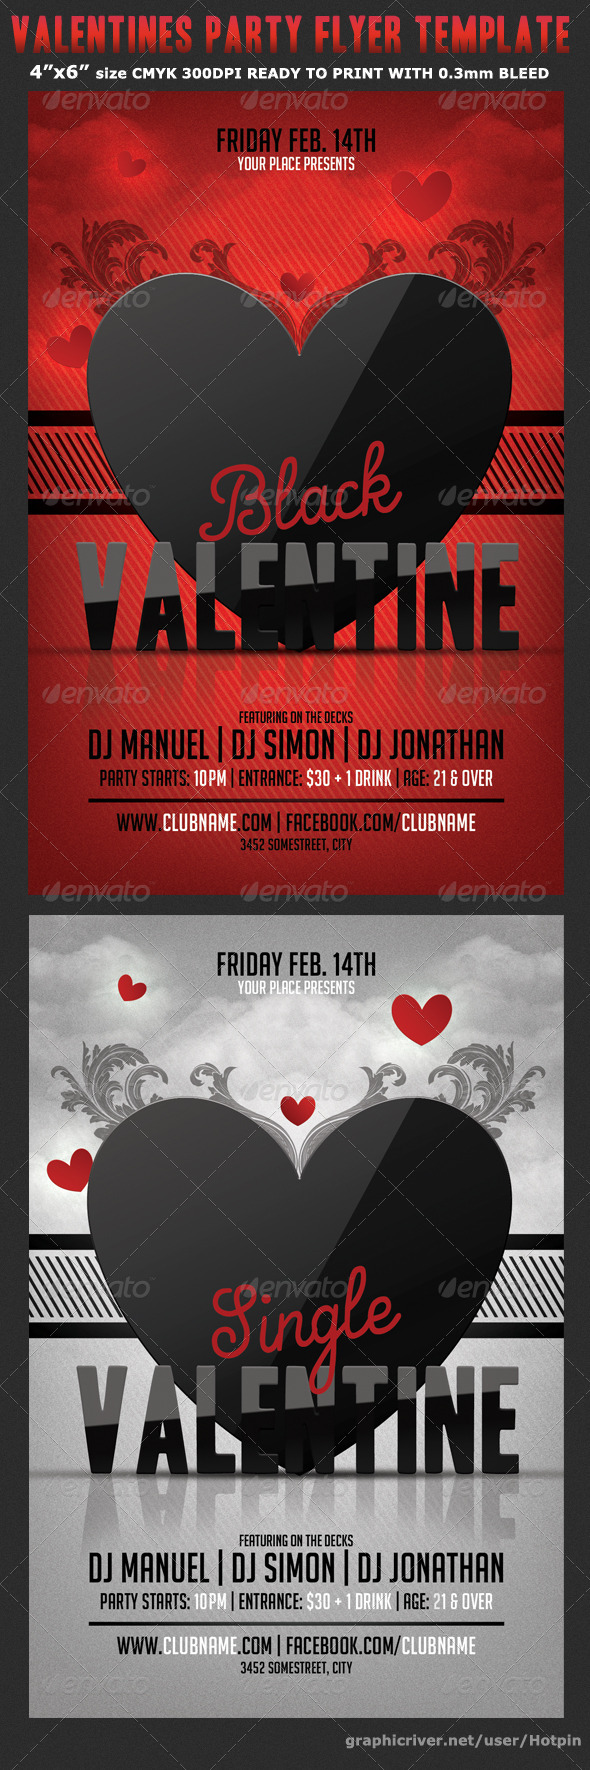 Black Valentine Party Flyer Template - Flyers Print Templates